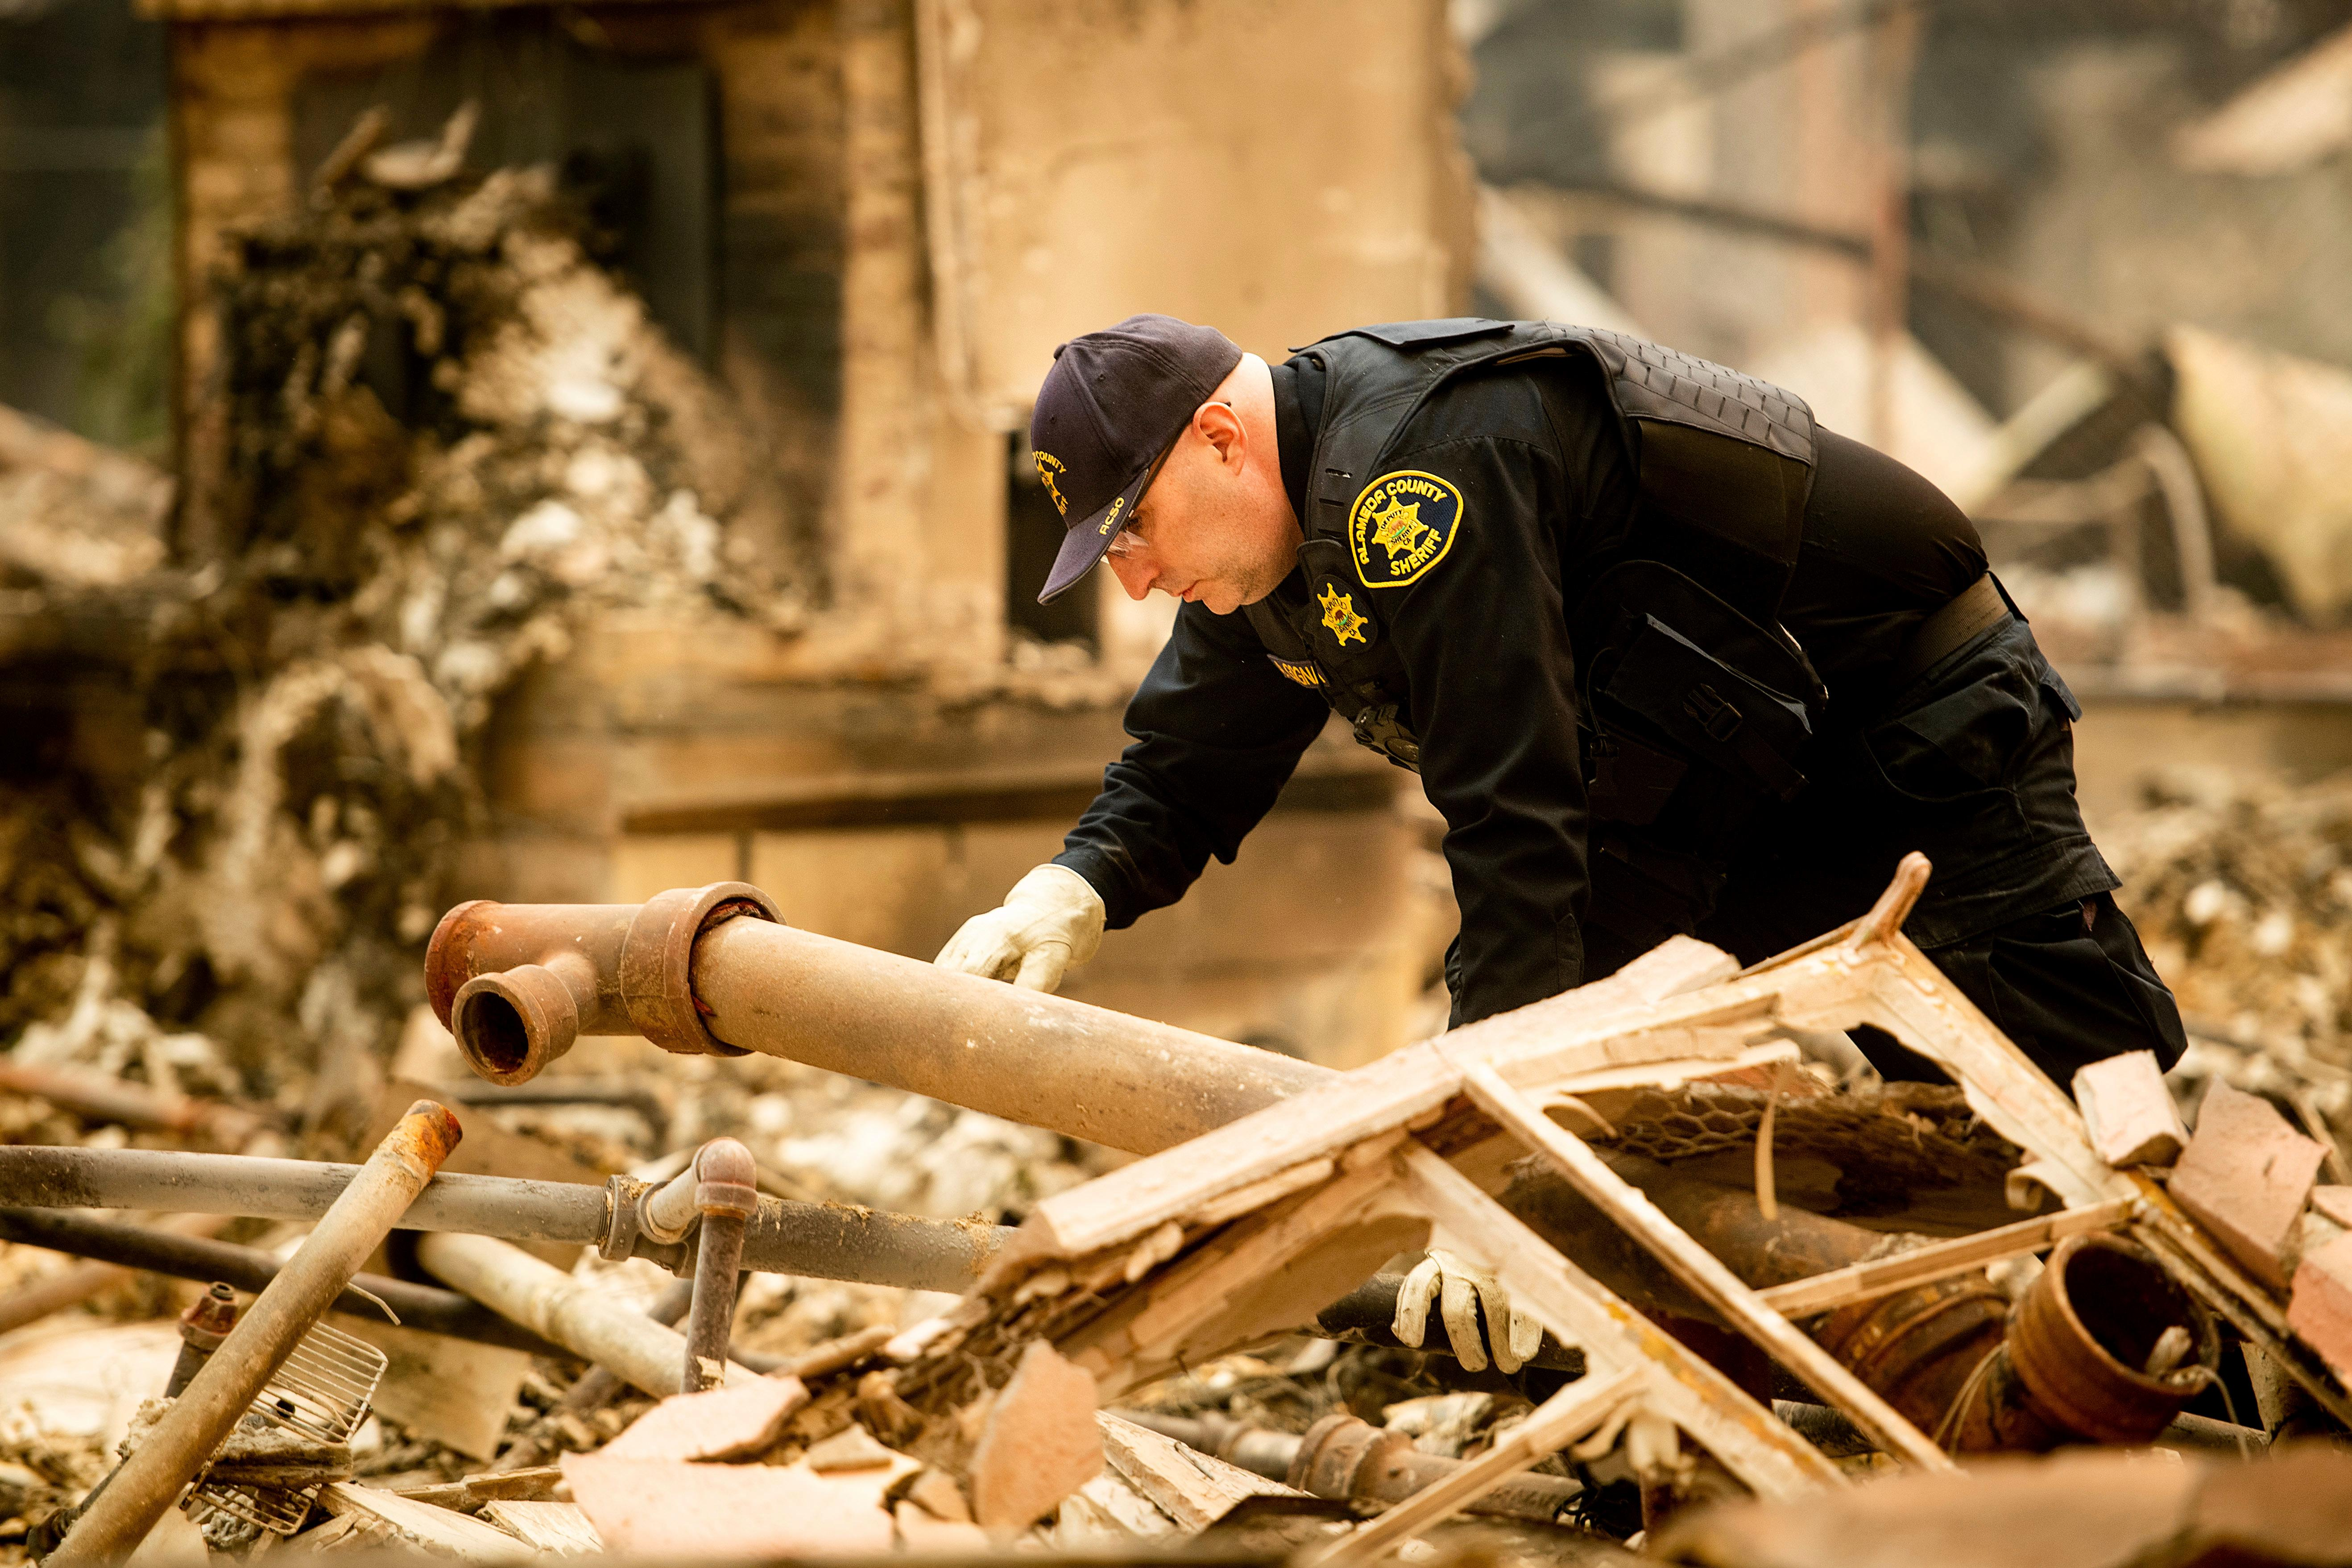 Alameda County Sheriff's deputy A. Gogna searches for victims of the Camp Fire on Monday, Nov. 12, 2018. (AP Photo/Noah Berger)